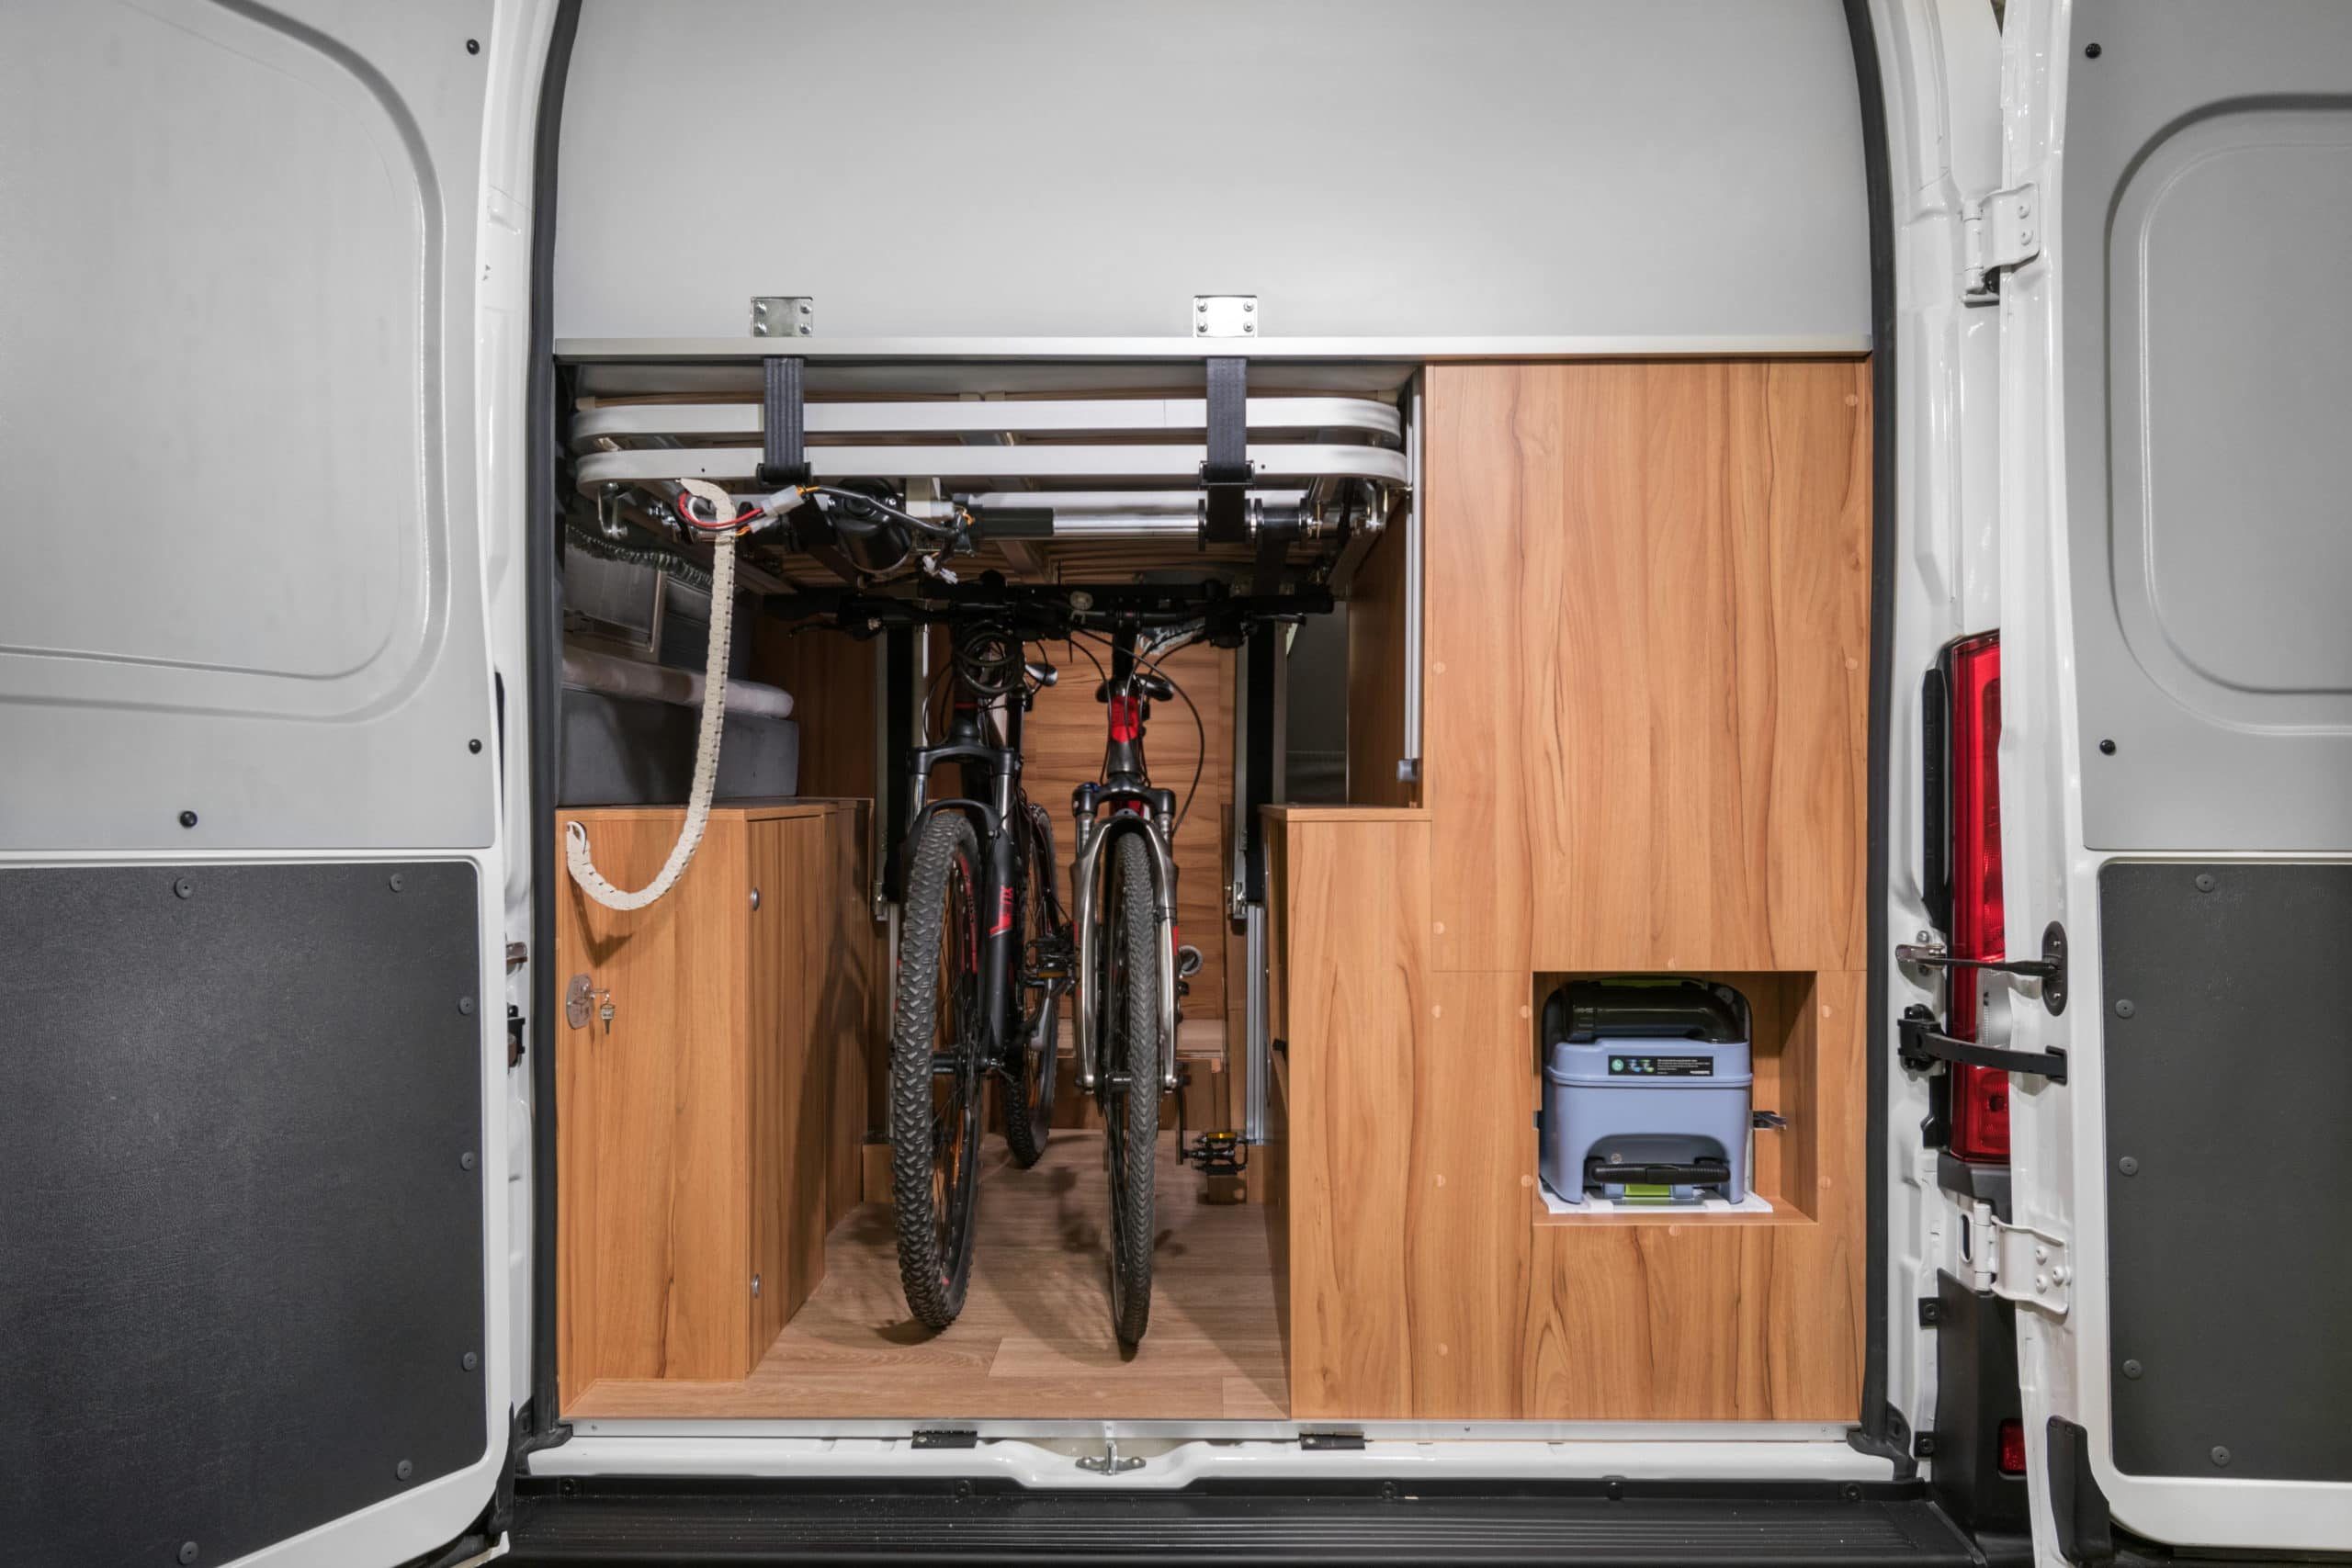 Camper van with two bikes inside